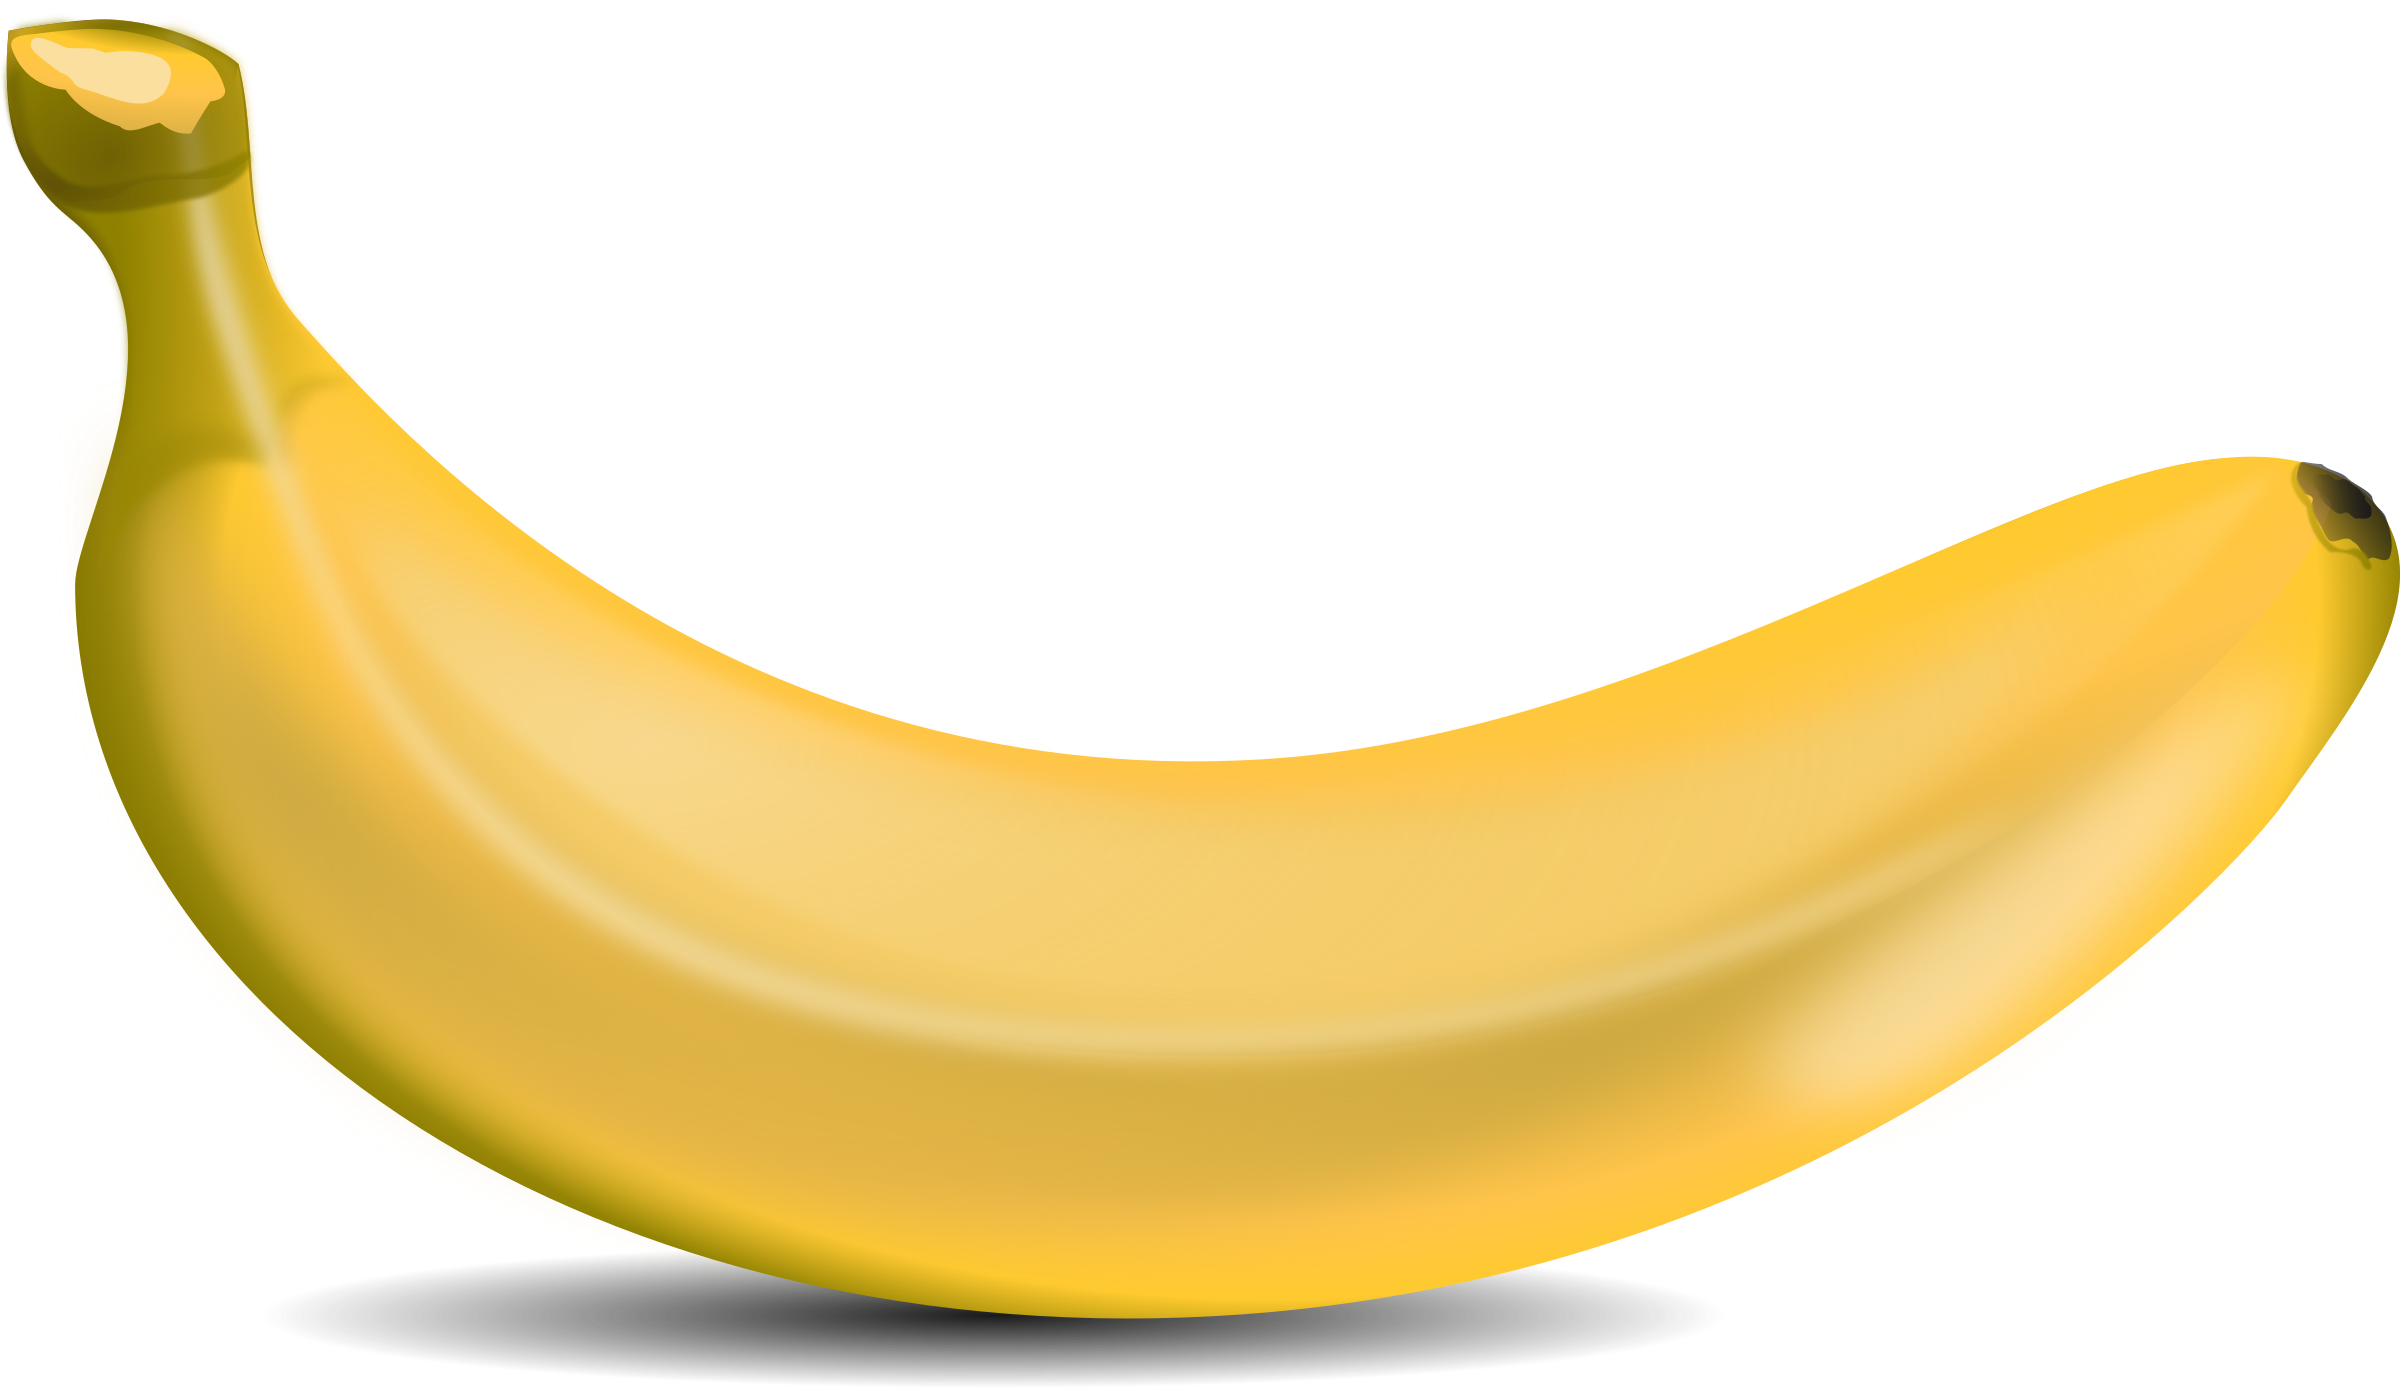 Transparent Bananas PNG Images, Free Pictures Banana.